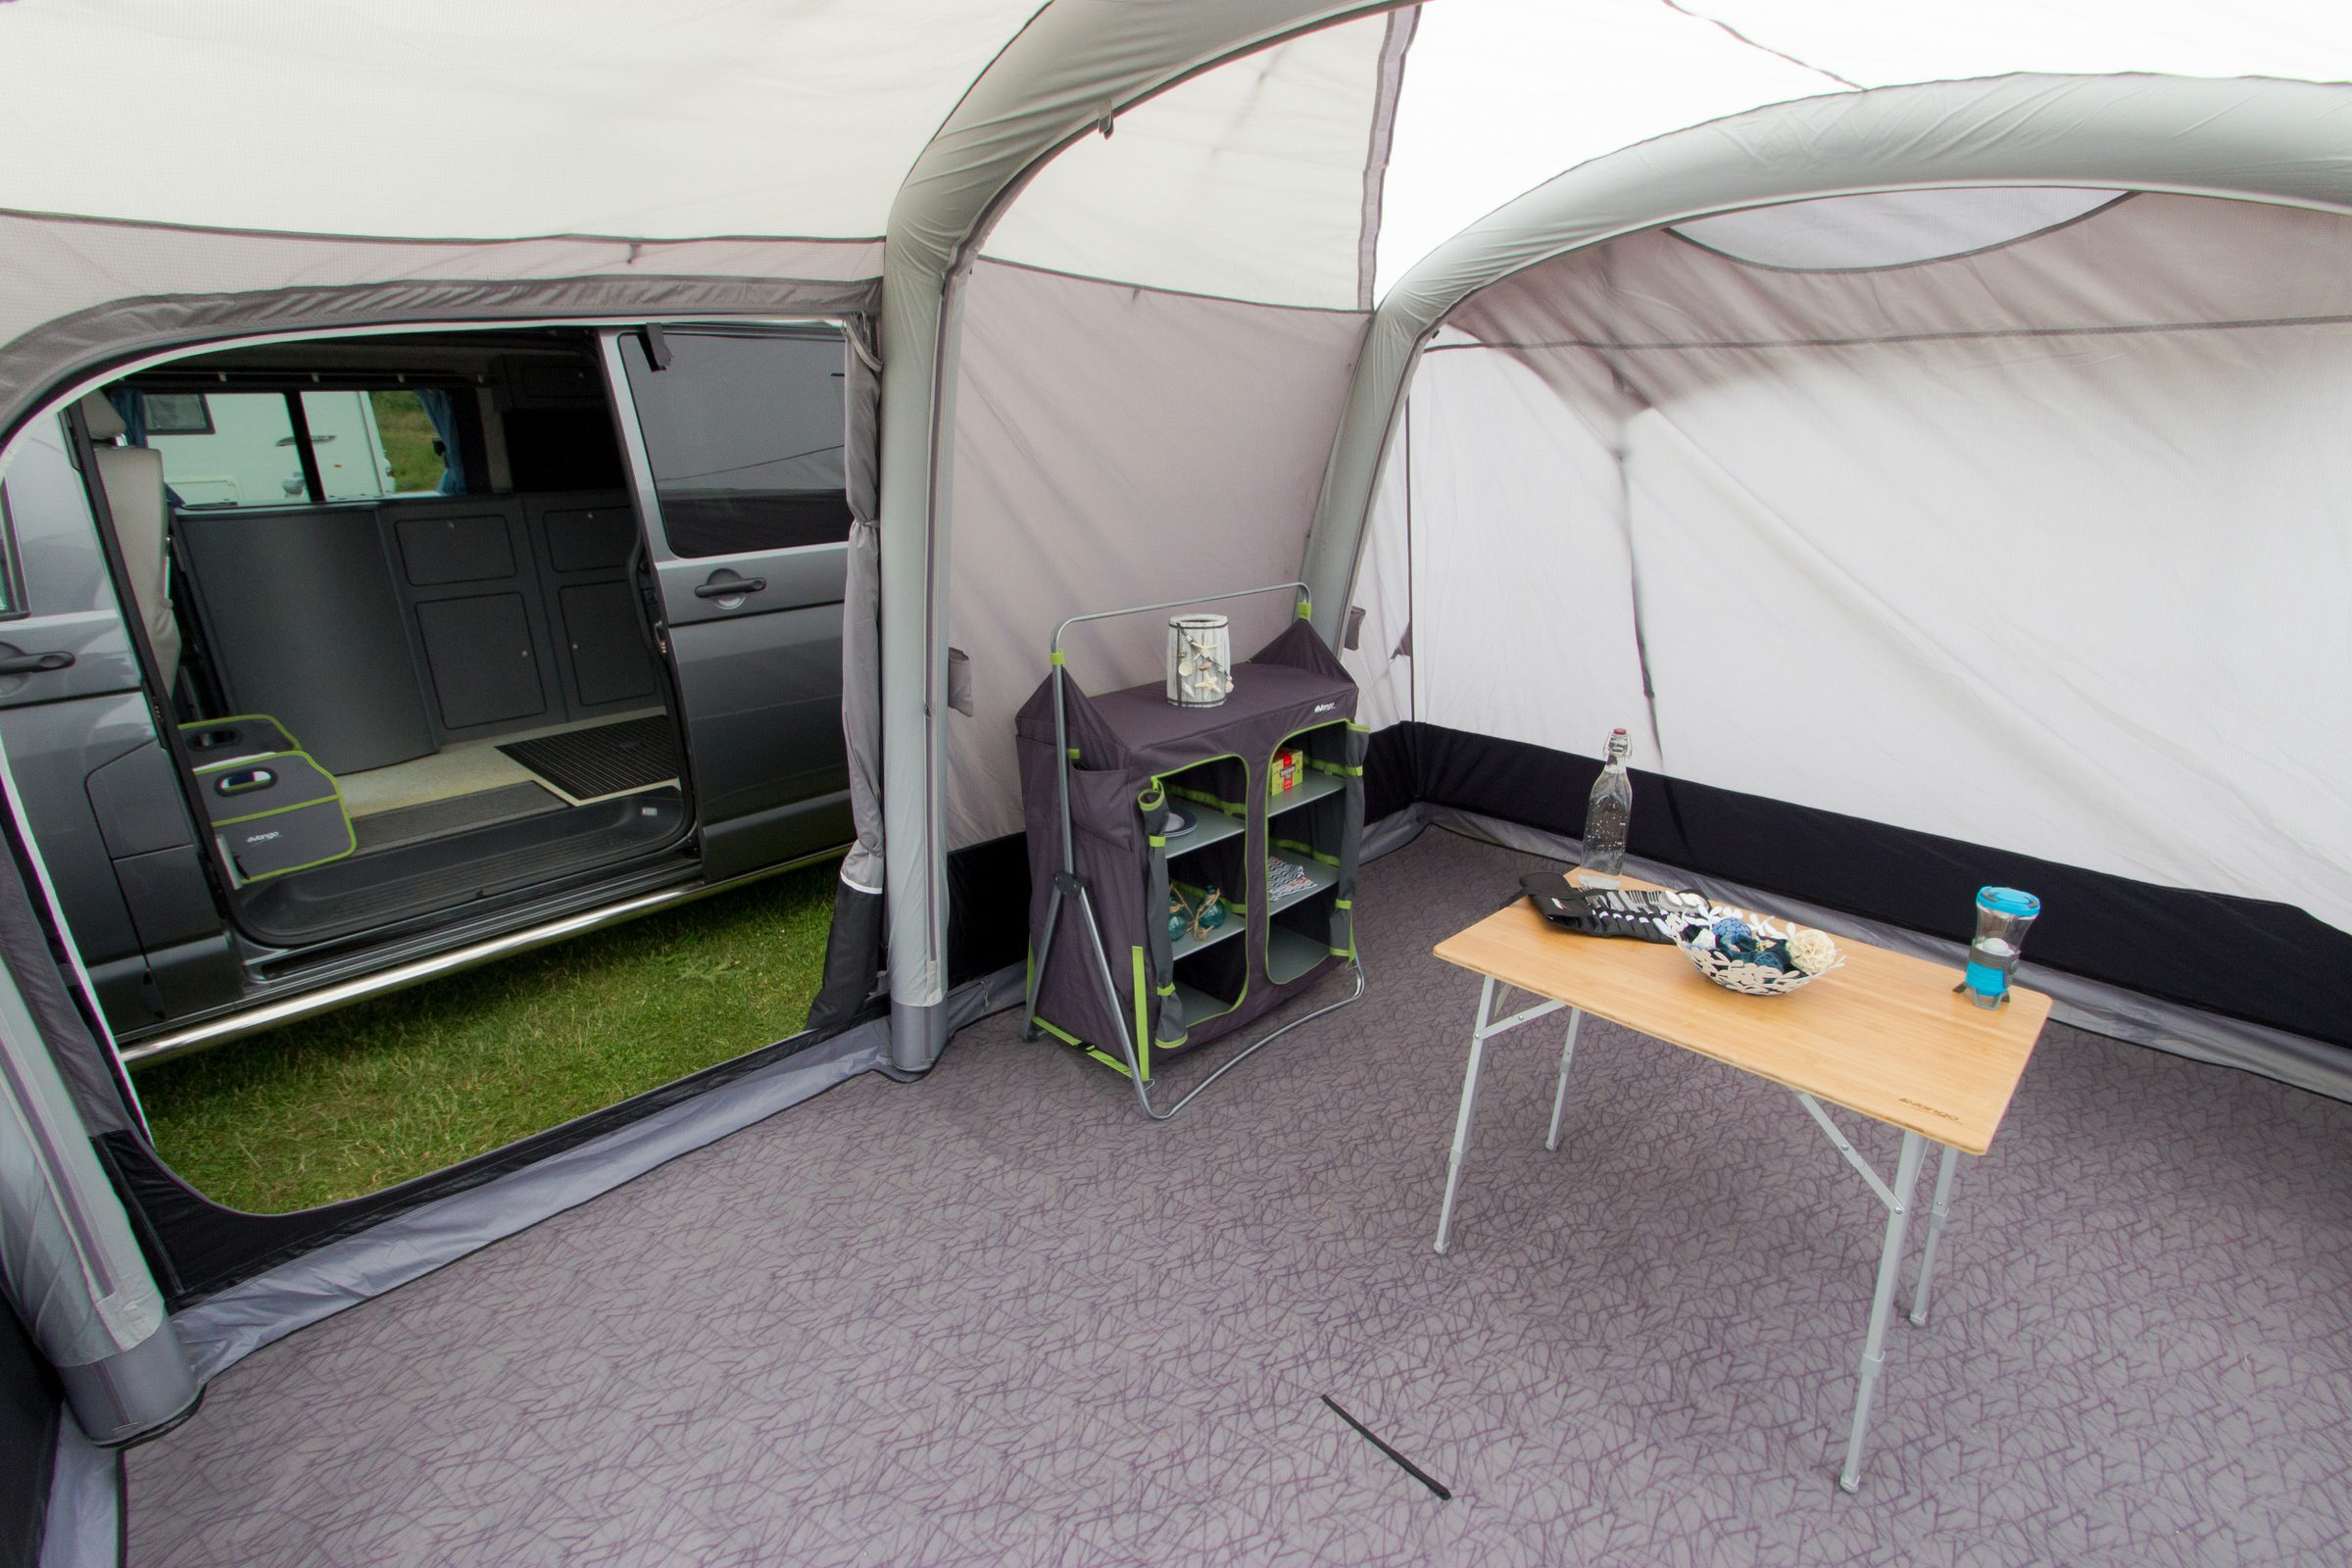 vango-2016-lifestyle-awnings-galli-4410-HI.jpg